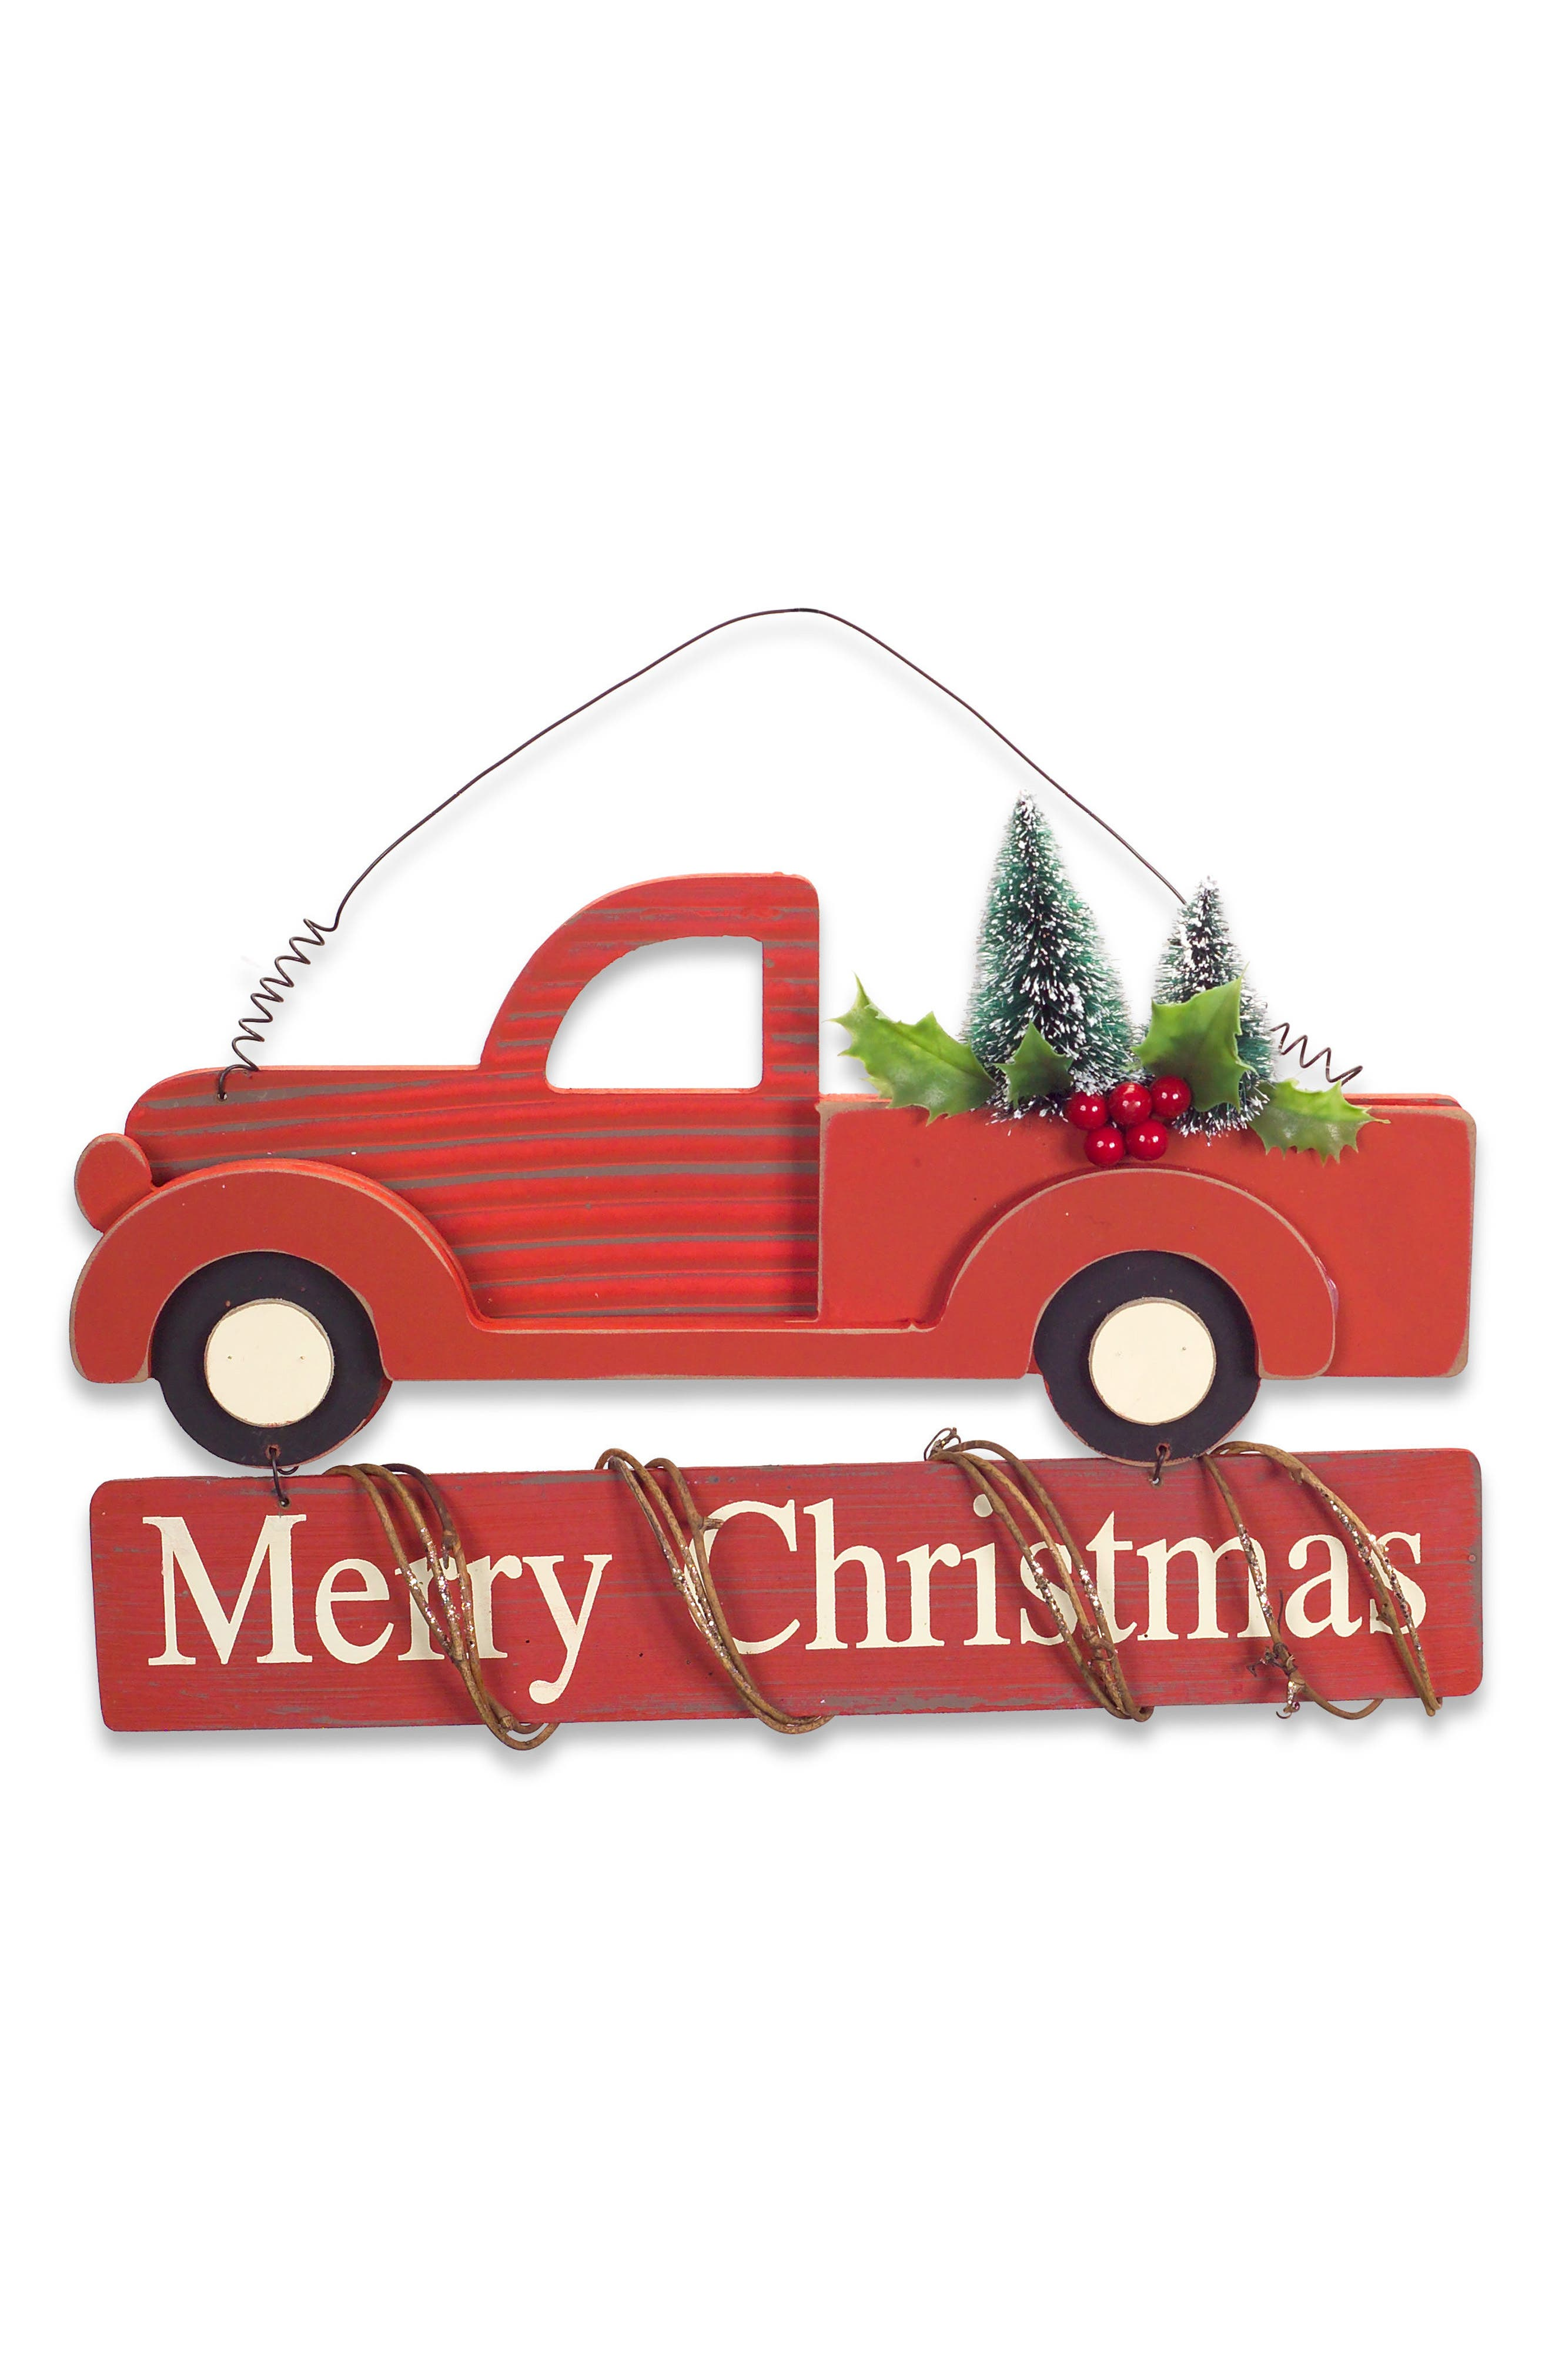 Merry Christmas Wall Art,                         Main,                         color, Red